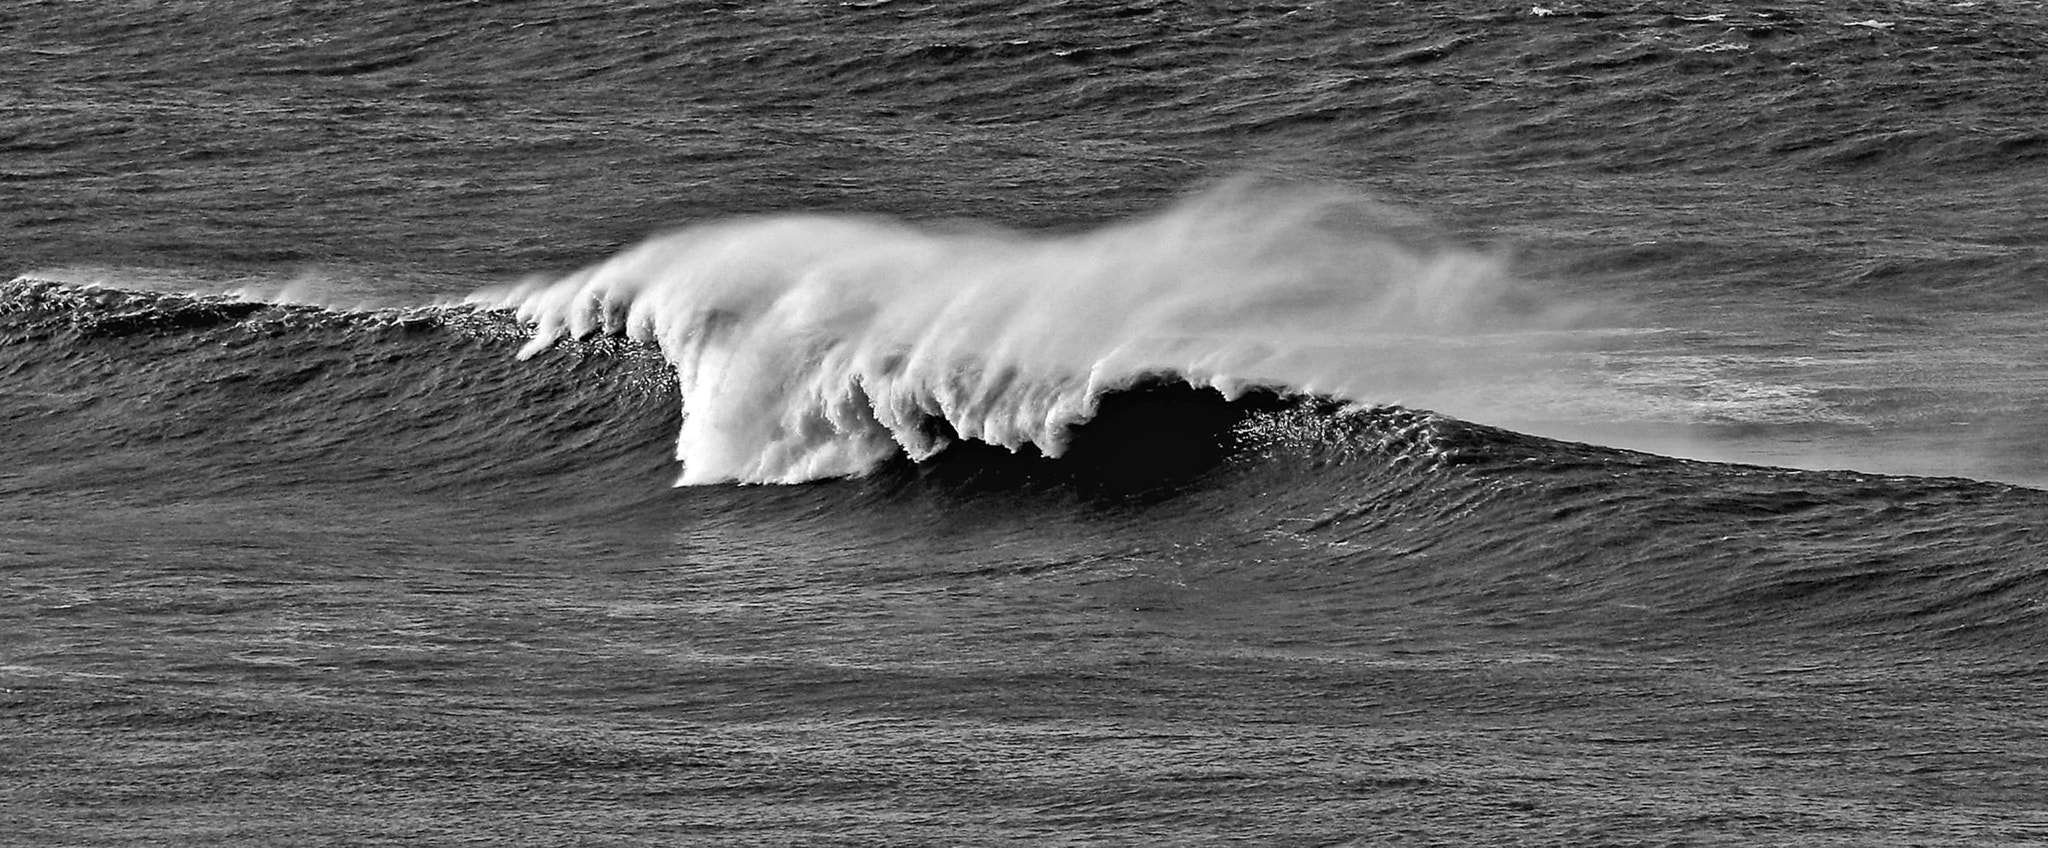 Photograph Swell by rodri mm on 500px